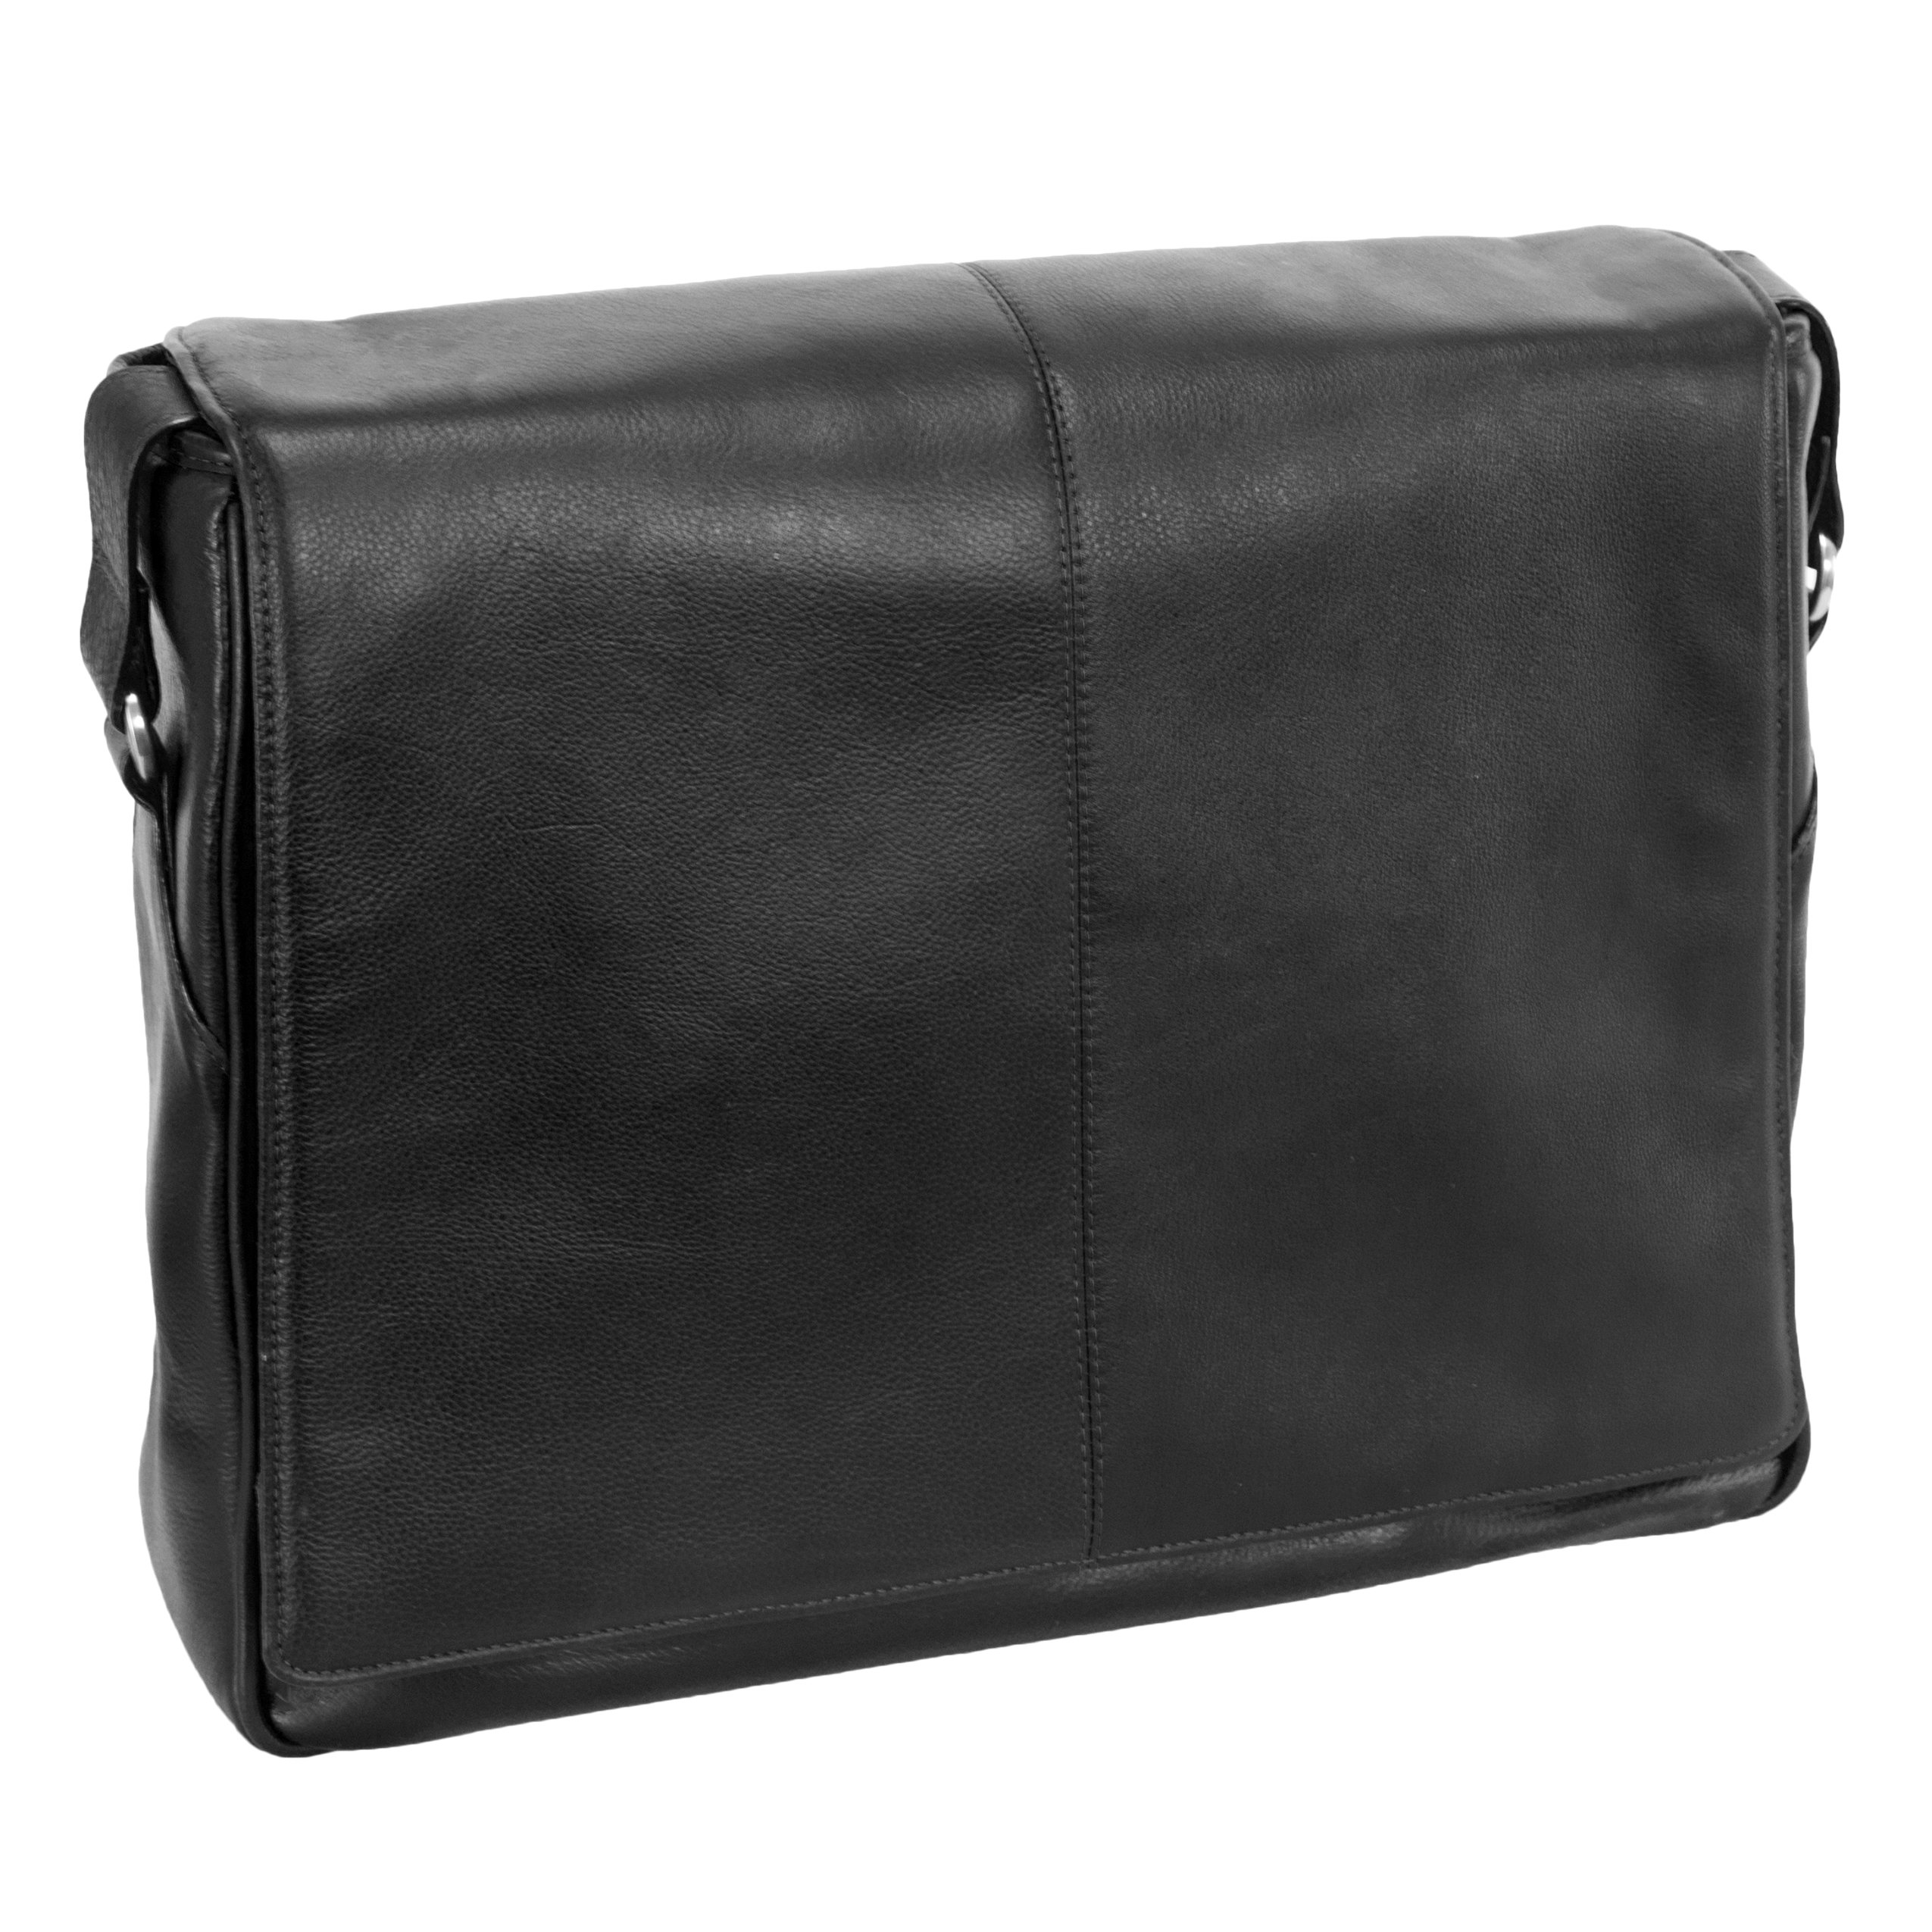 Siamod SAN FRANCESCO 45355 Black Leather Messenger Bag